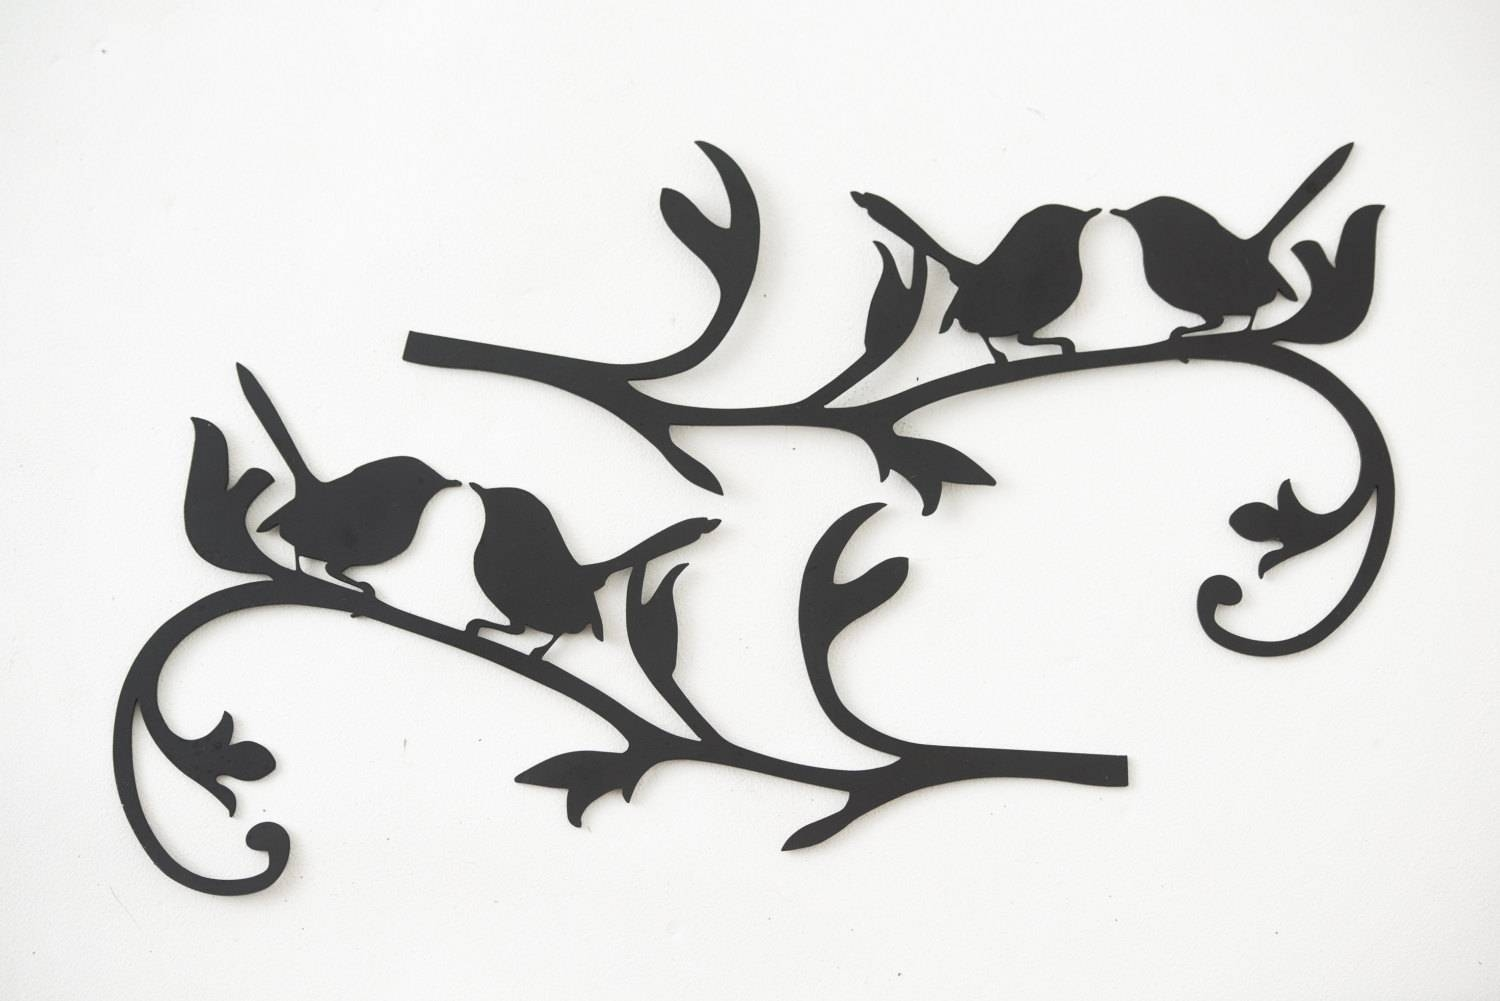 Wall Art Designs: Metal Bird Wall Art Hand Drawn And Laser Cut Inside Most Recently Released Bird Metal Wall Art (View 14 of 20)